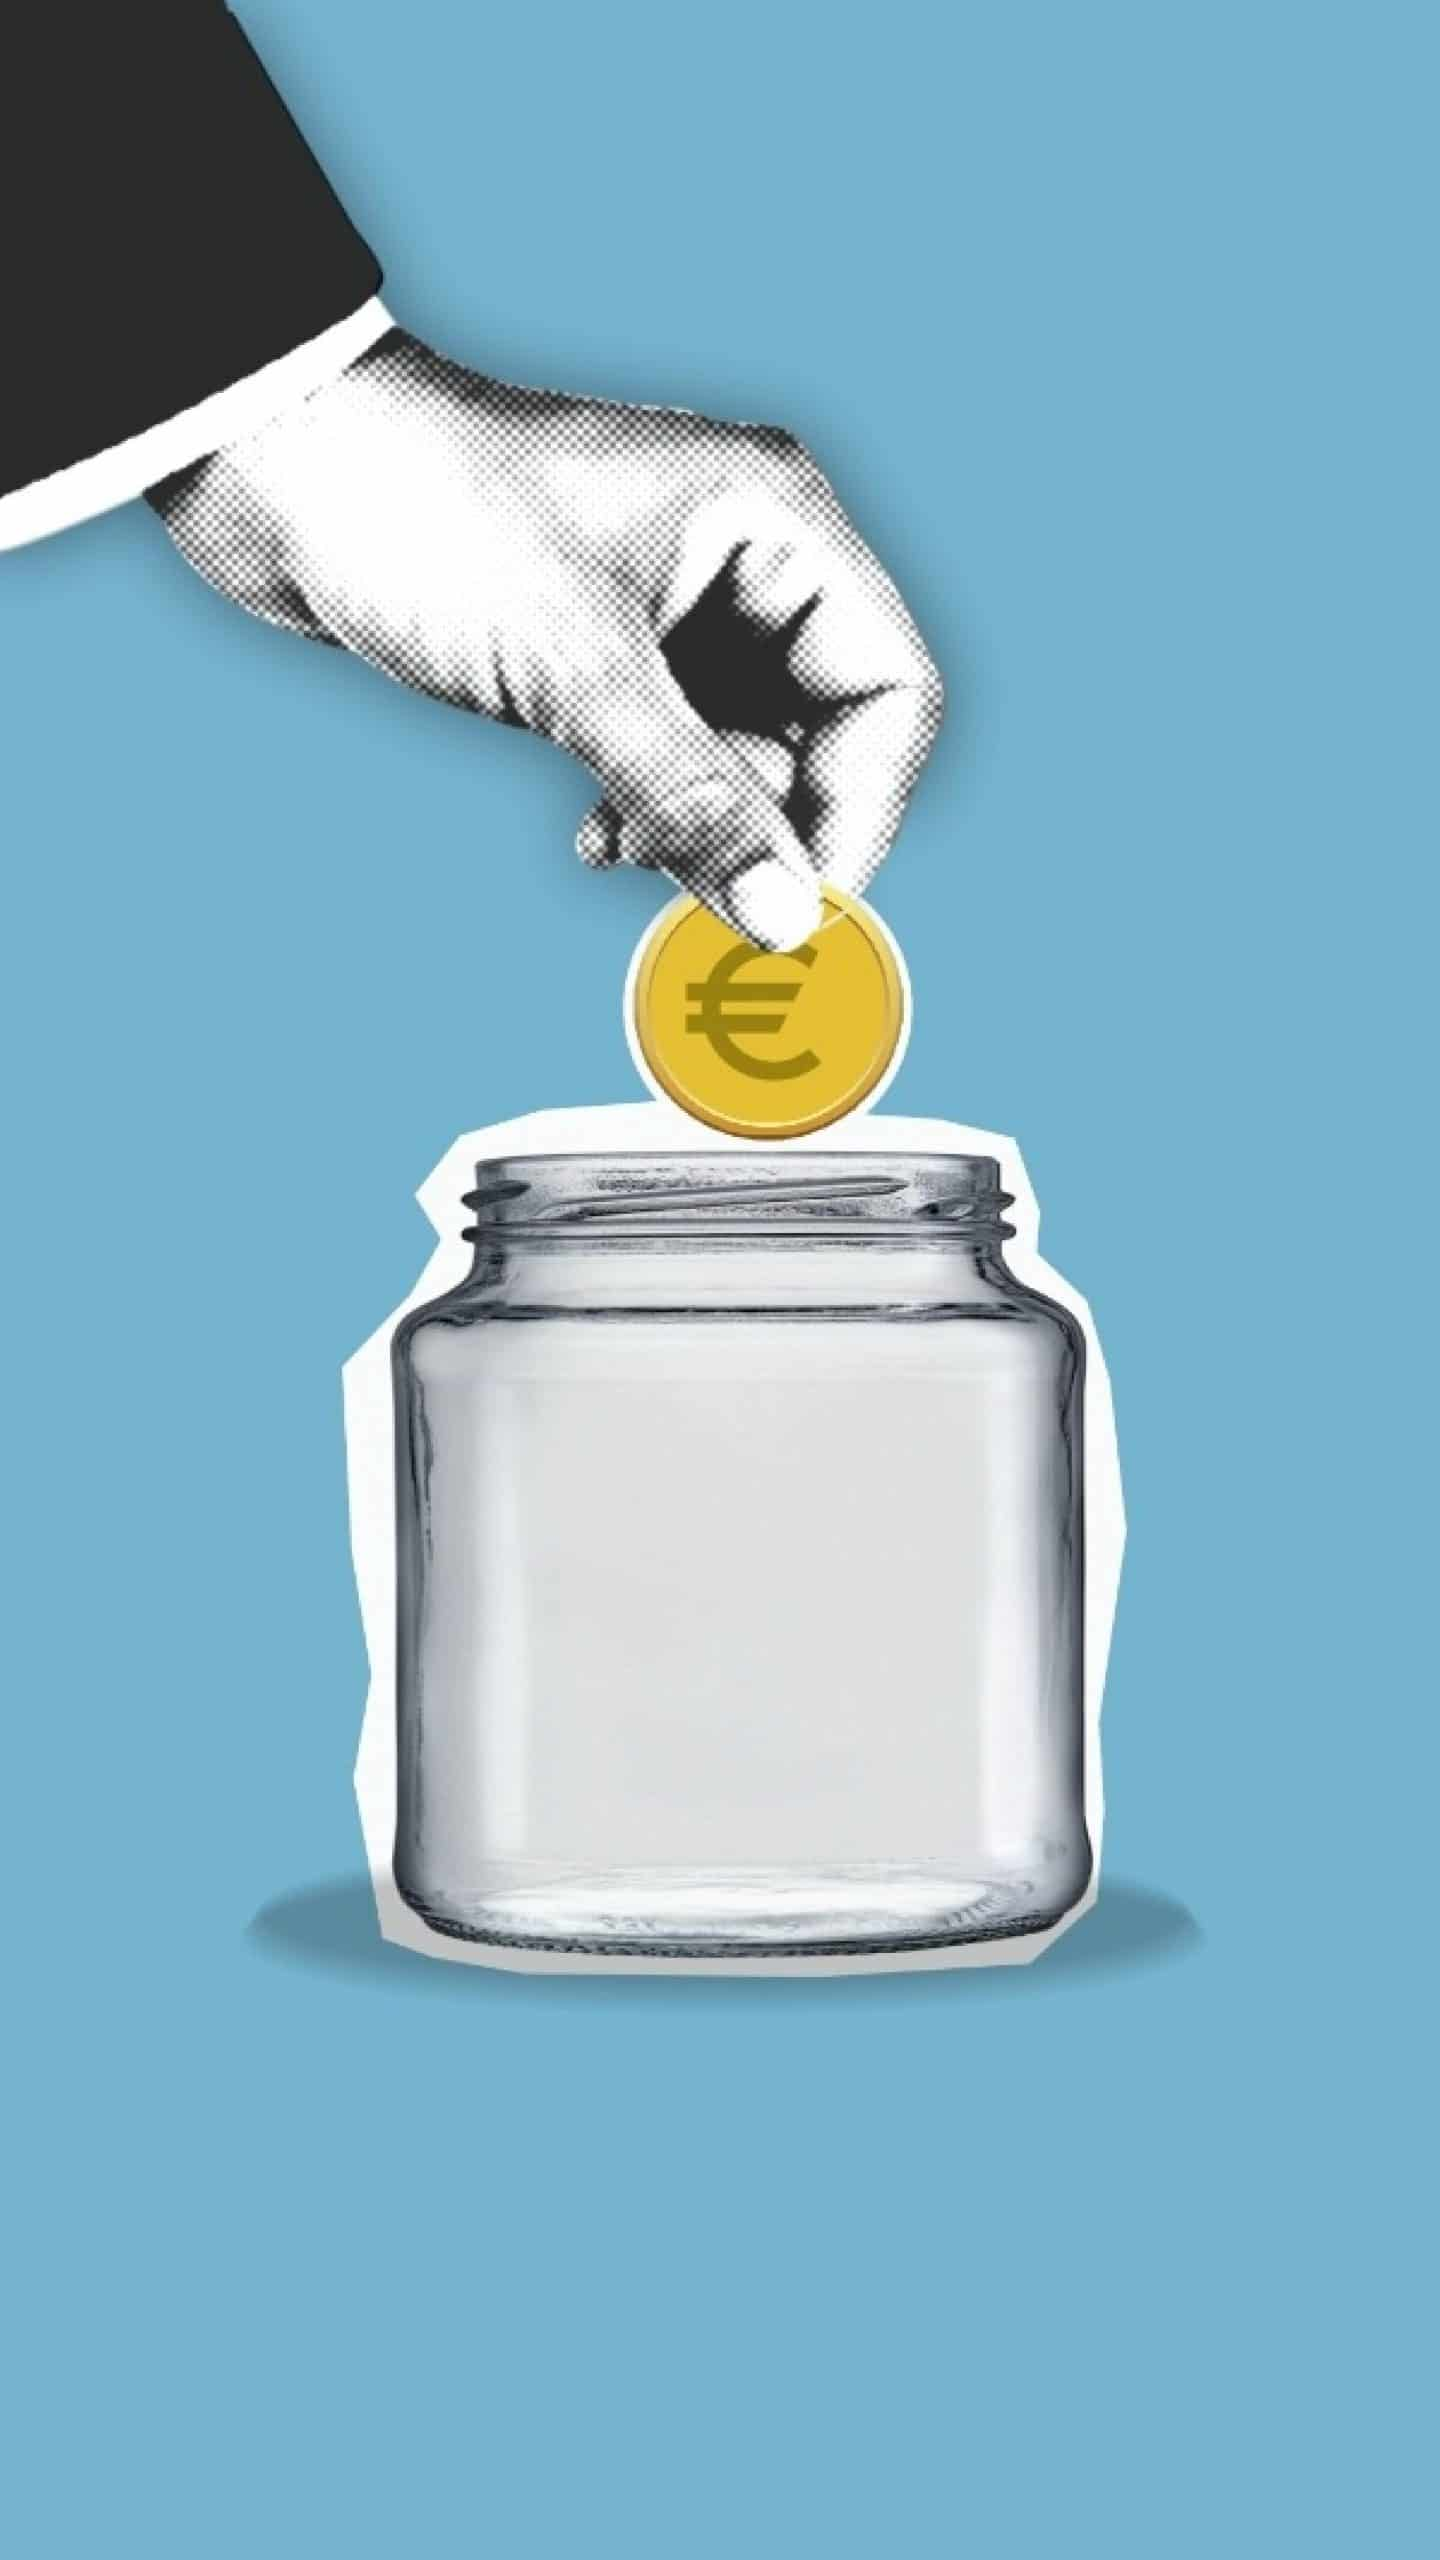 https://www.pexels.com/photo/crop-faceless-person-putting-coin-into-glass-jar-6289171/